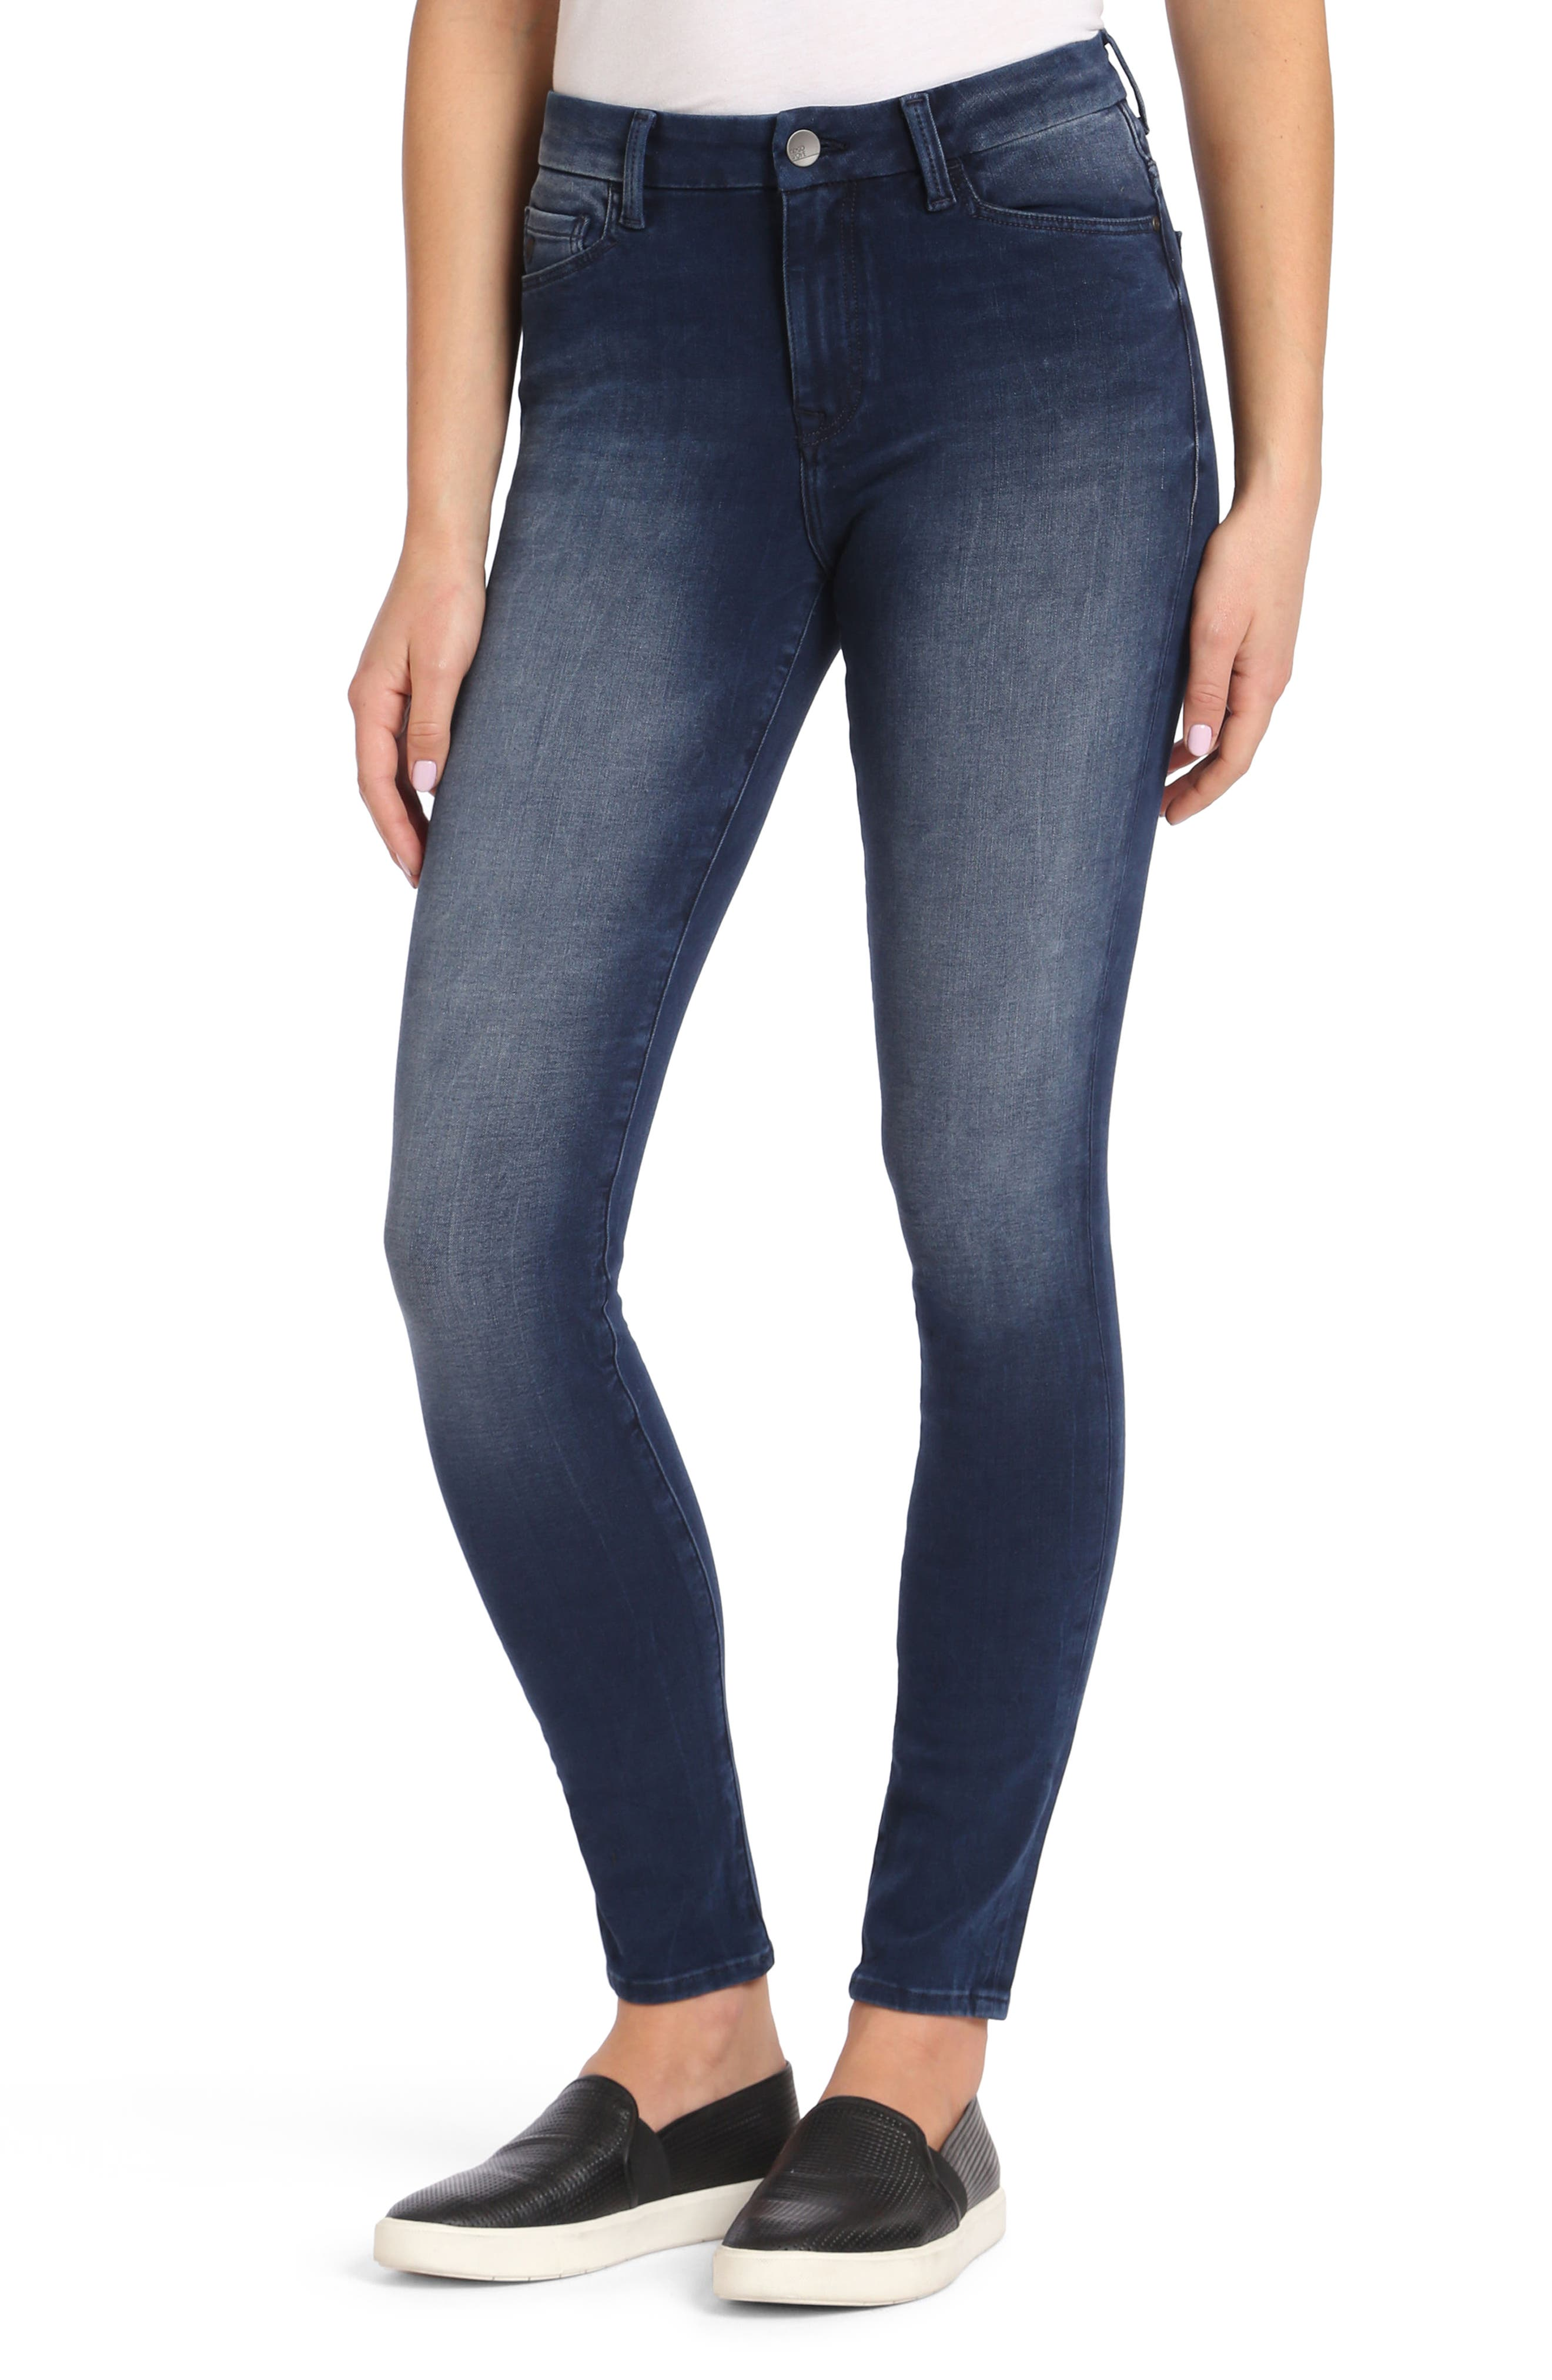 Alternate Image 1 Selected - Mavi Jeans Alissa Stretch Slim High Rise Ankle Jeans (Ink Bi Stretch)